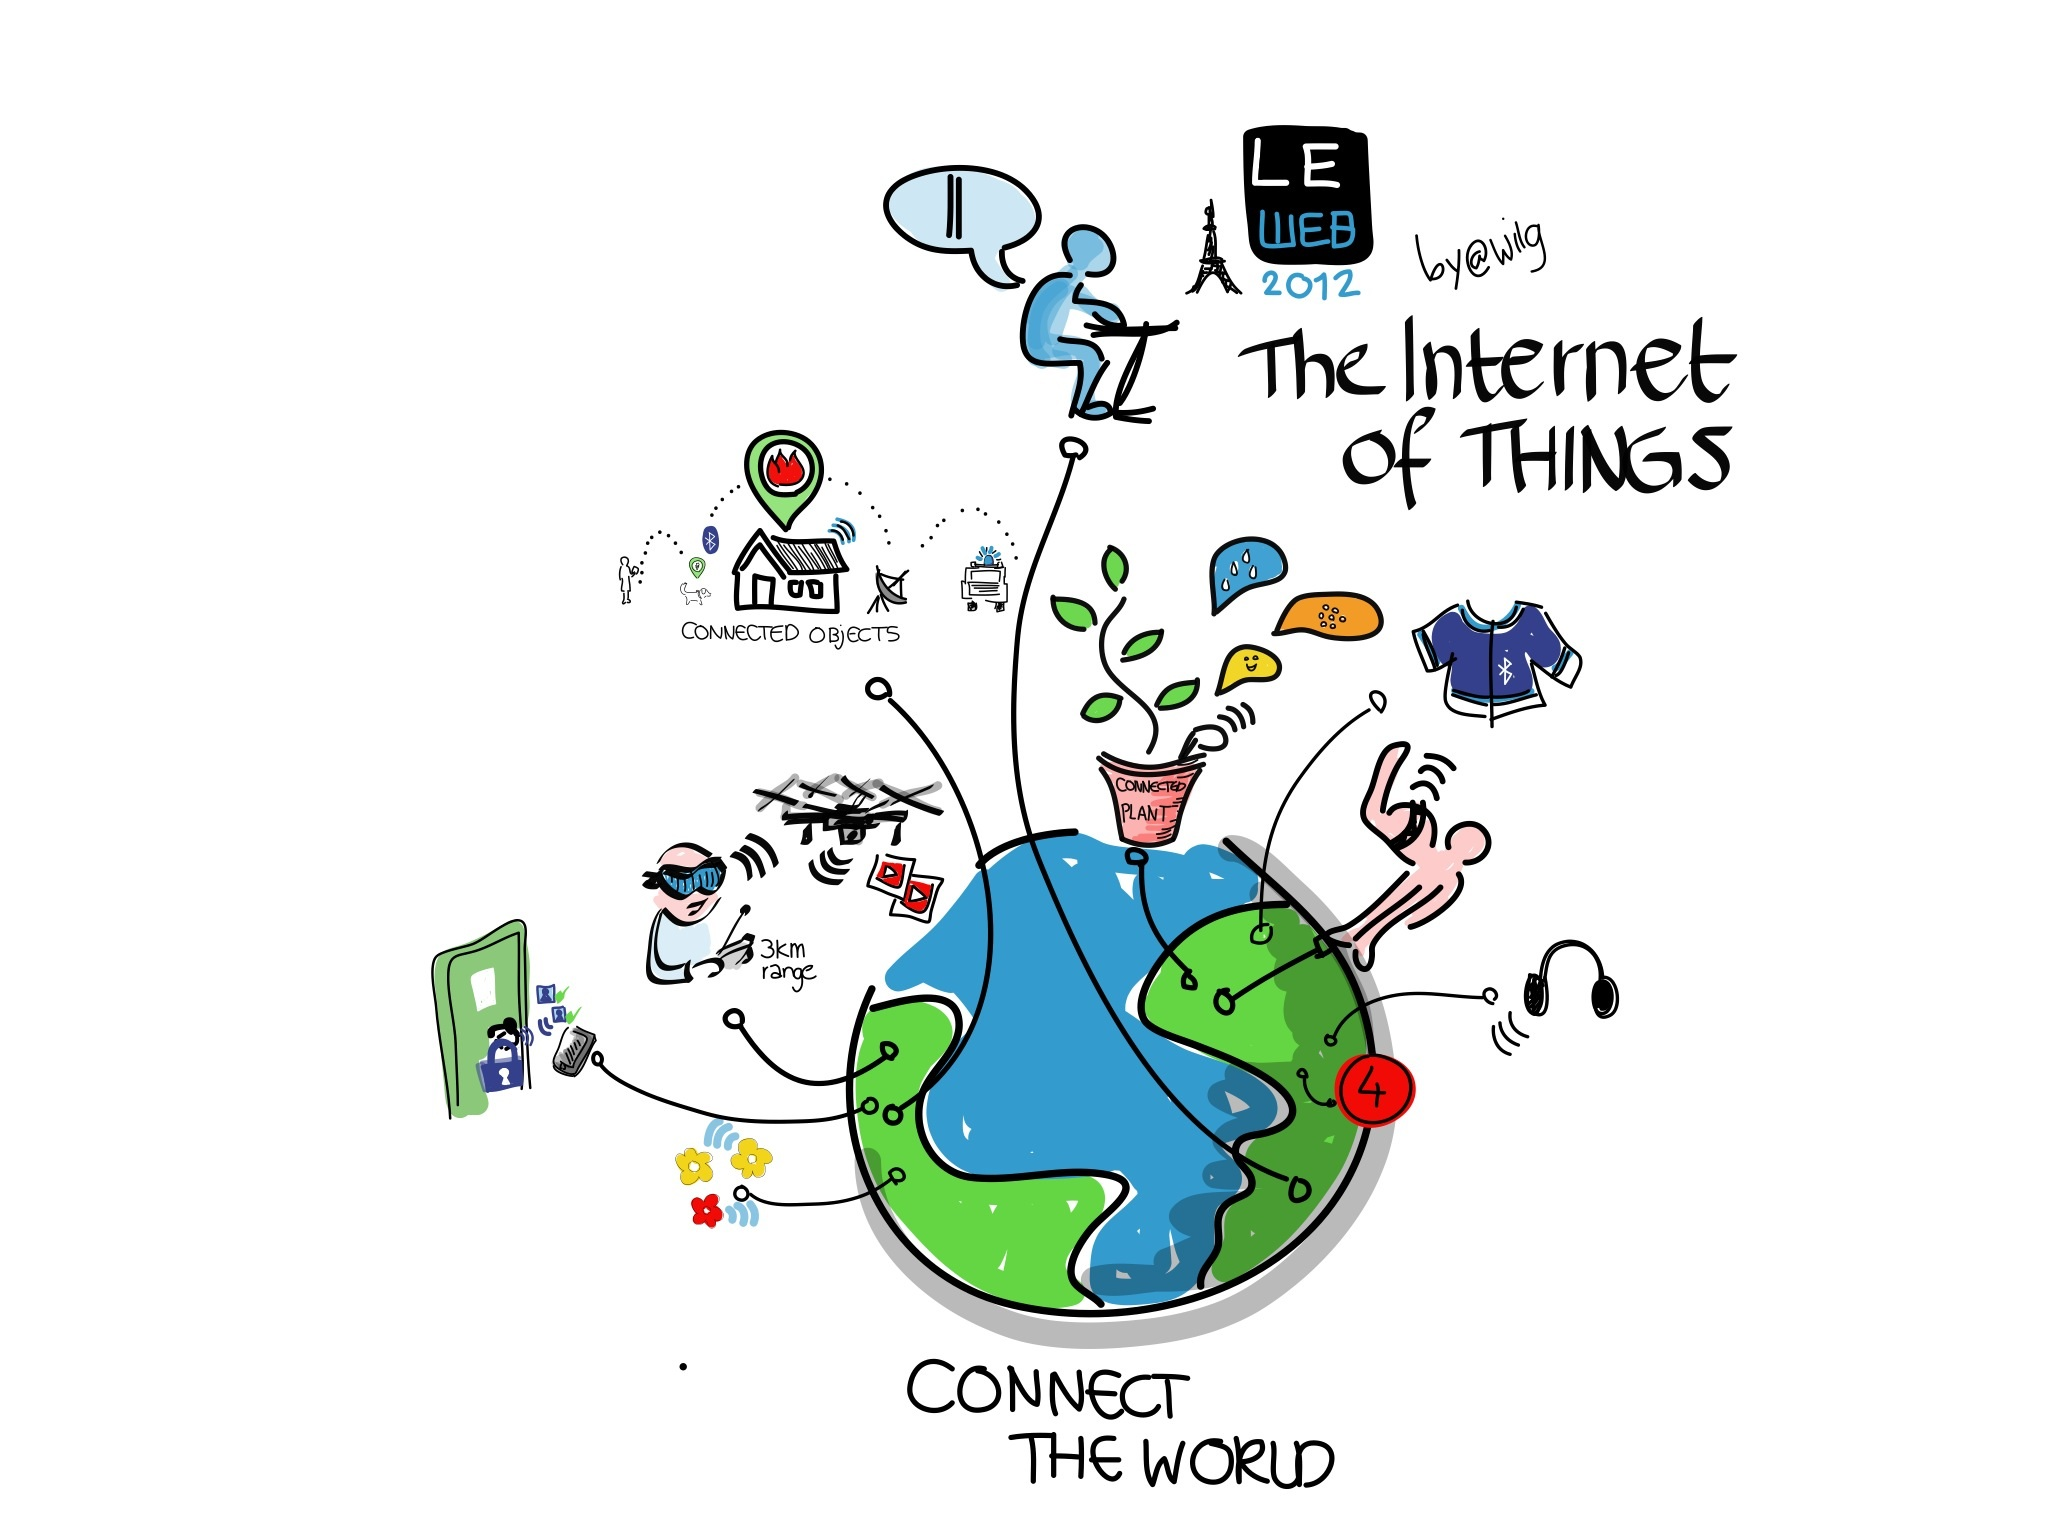 A drawing depicting the Internet of Things